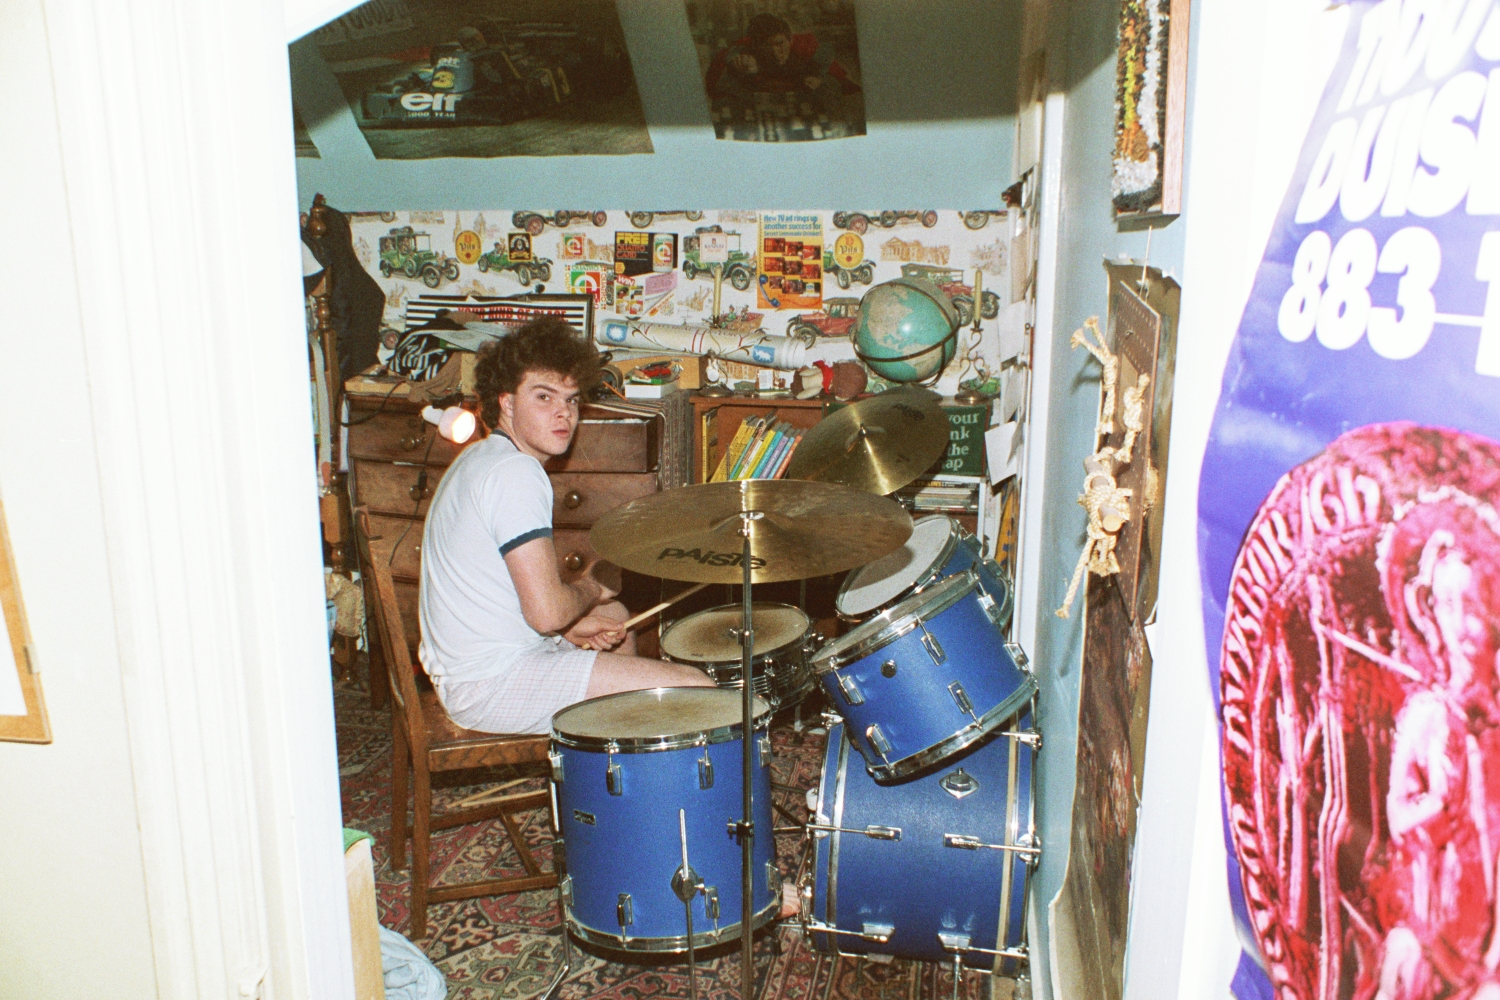 Russ Plays the Drums